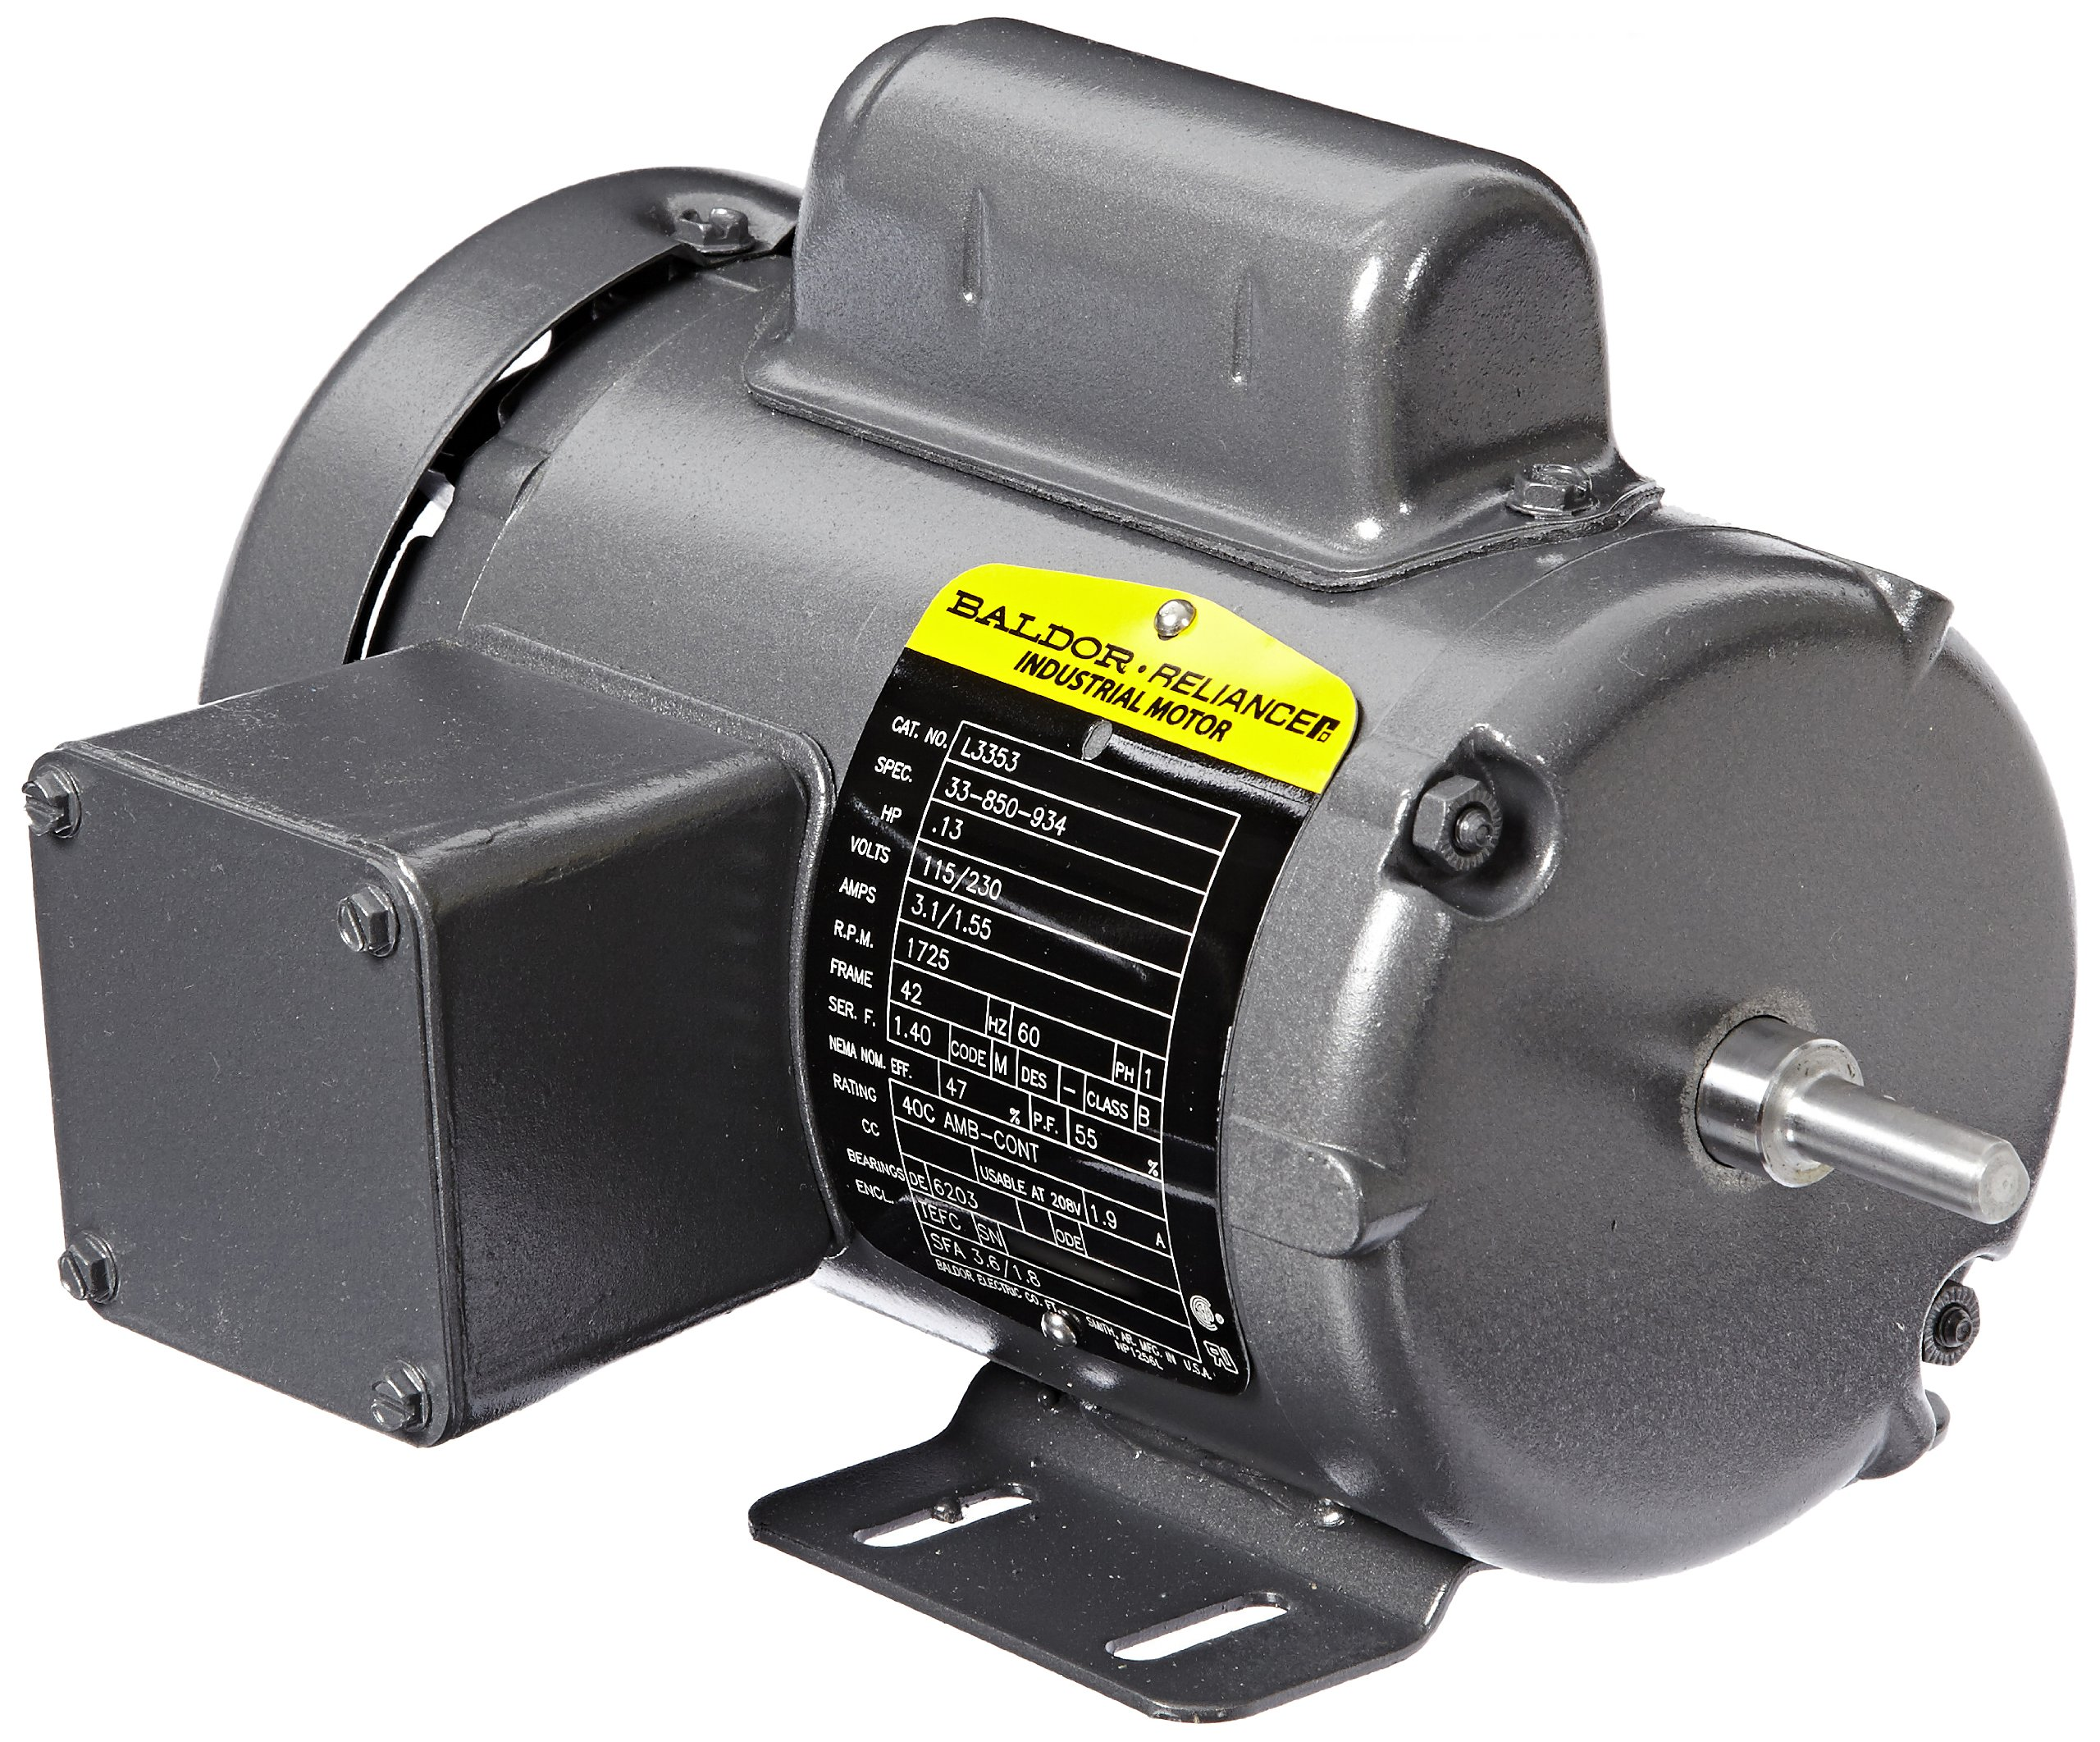 Baldor L3353 General Purpose AC Motor, Single Phase, 42 Frame, TEFC Enclosure, 13/100Hp Output, 1725rpm, 60Hz, 115/230V Voltage